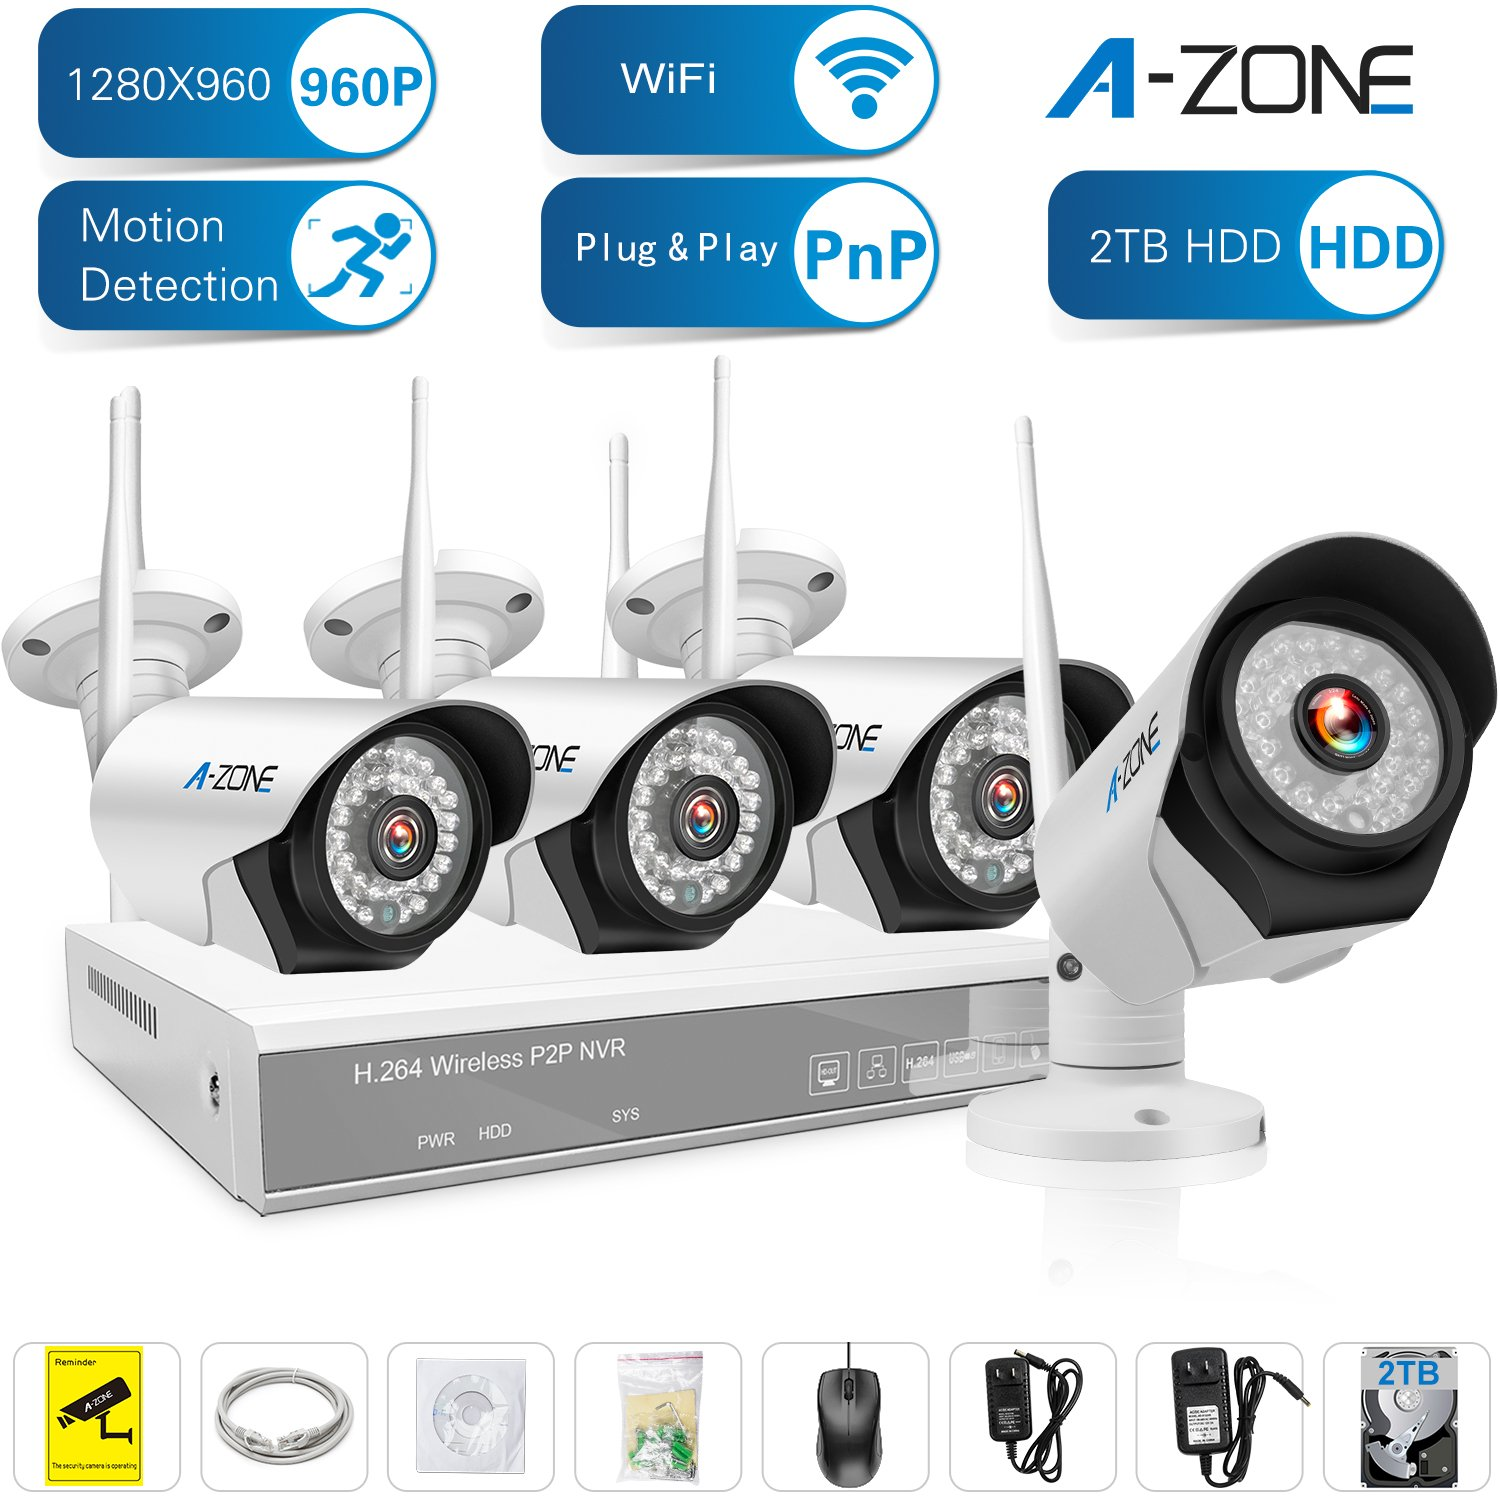 A-ZONE 4 Channel 960P HD Wireless Security Camera System NVR,1280 x 960P Waterproof Night Vision IP Surveillance Camera Kit ,Including 2TB HDD